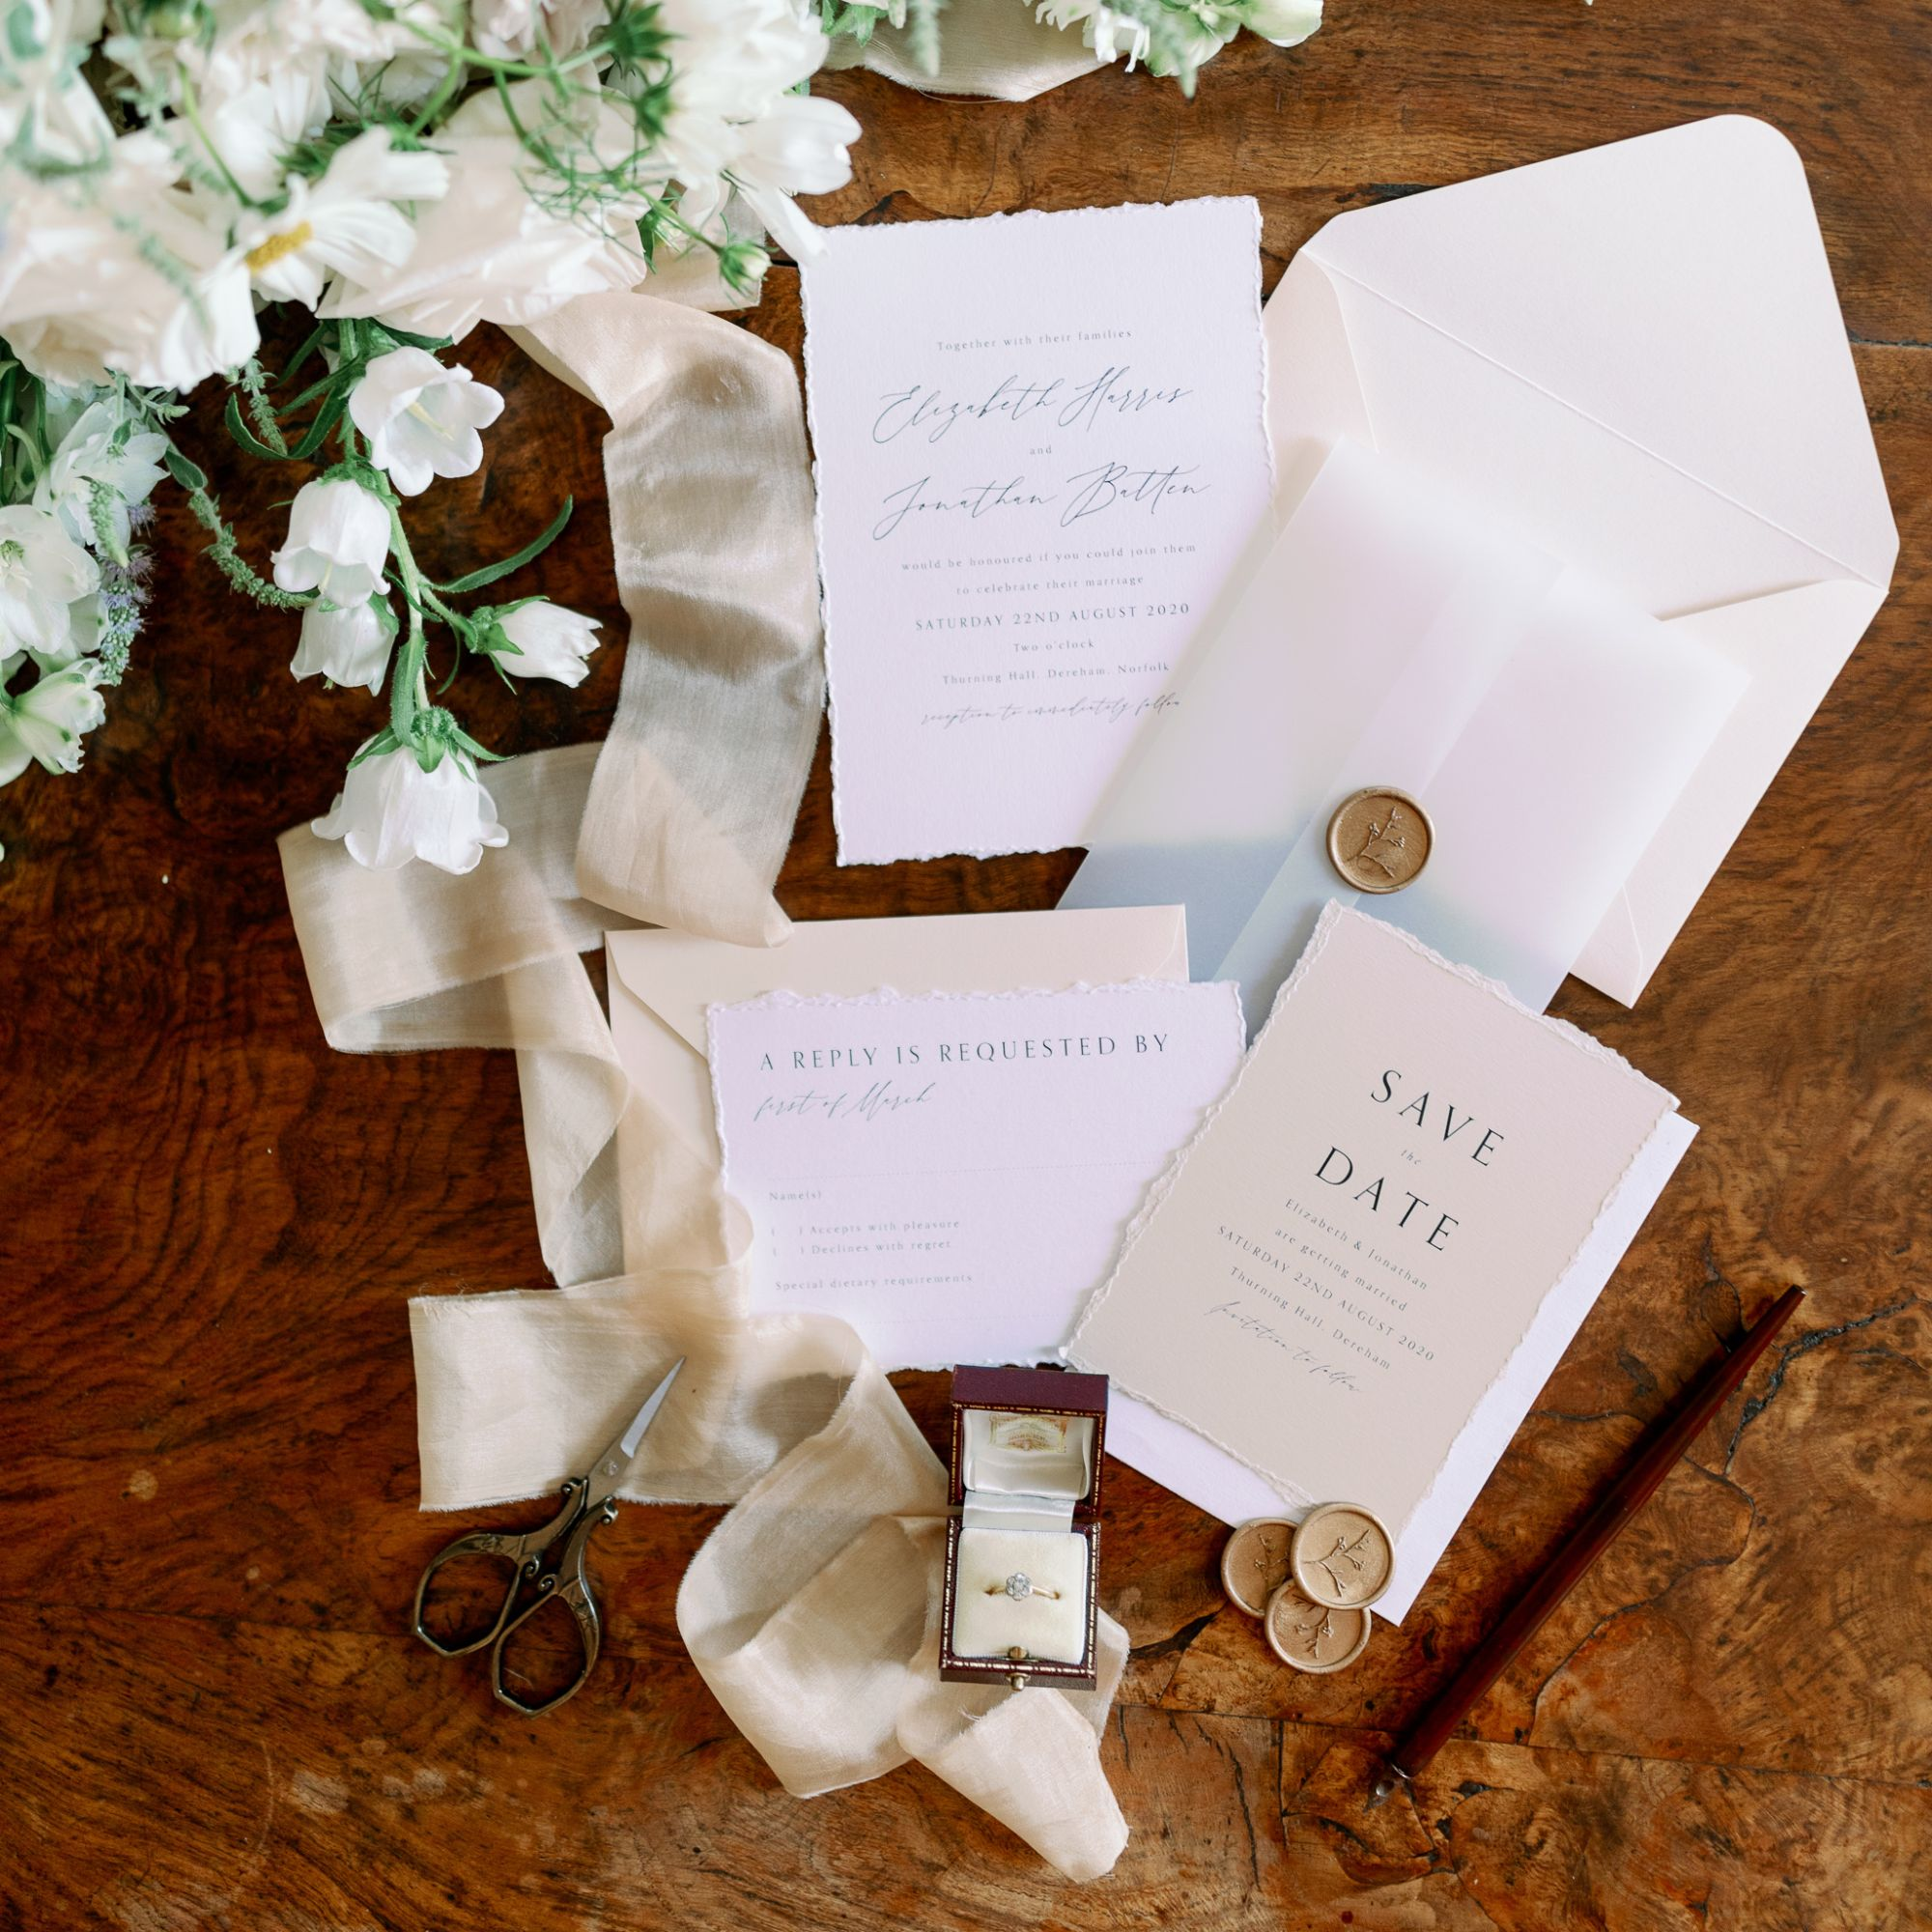 Romantic Wedding Invitation Design.jpg